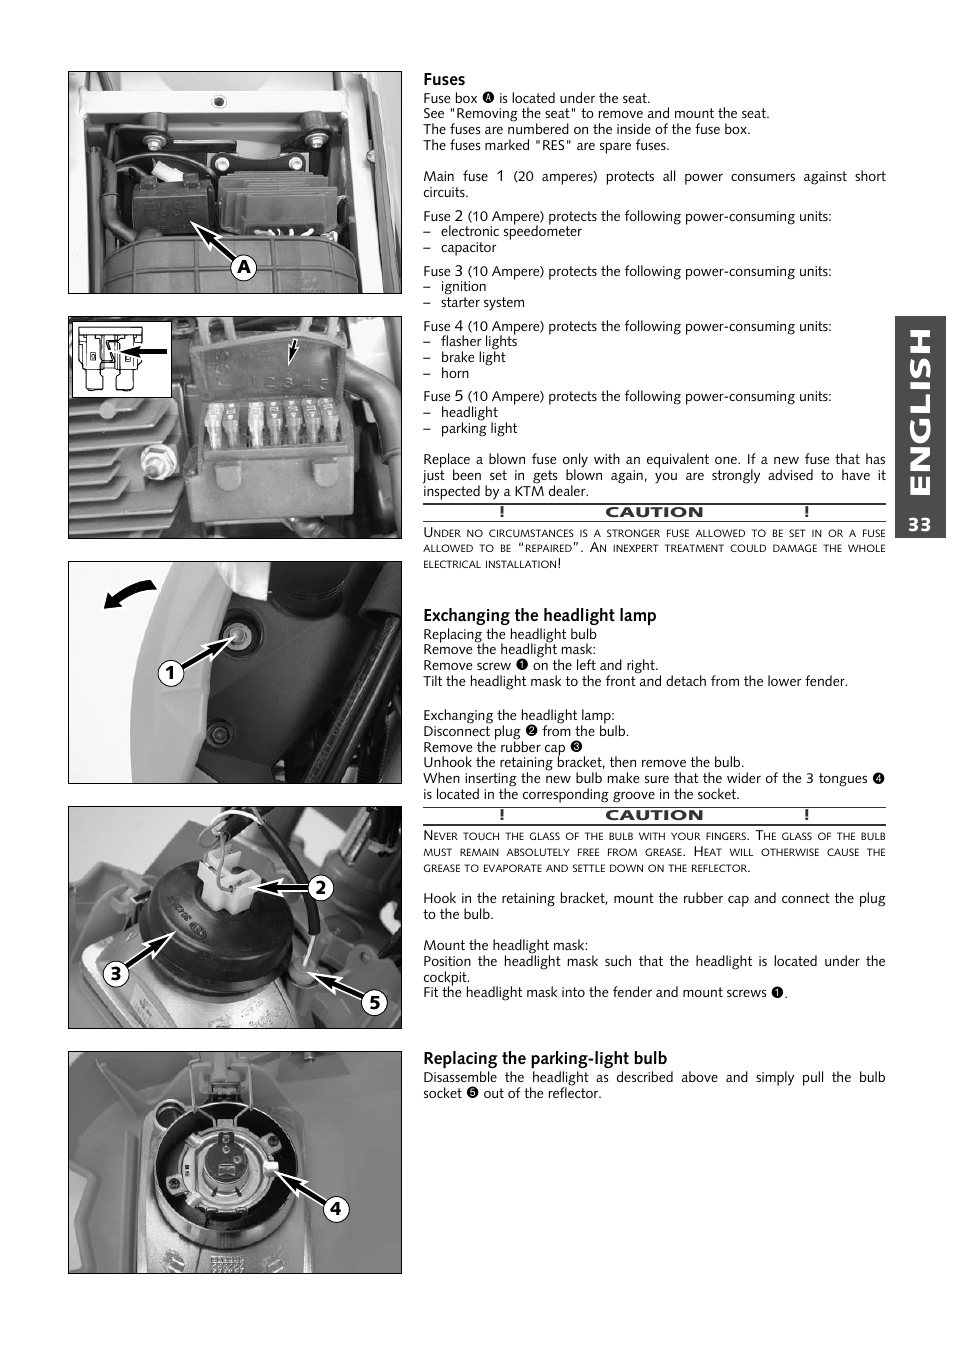 English Ktm 640 Lc4 Enduro User Manual Page 34 50 Fuse Box Mounts